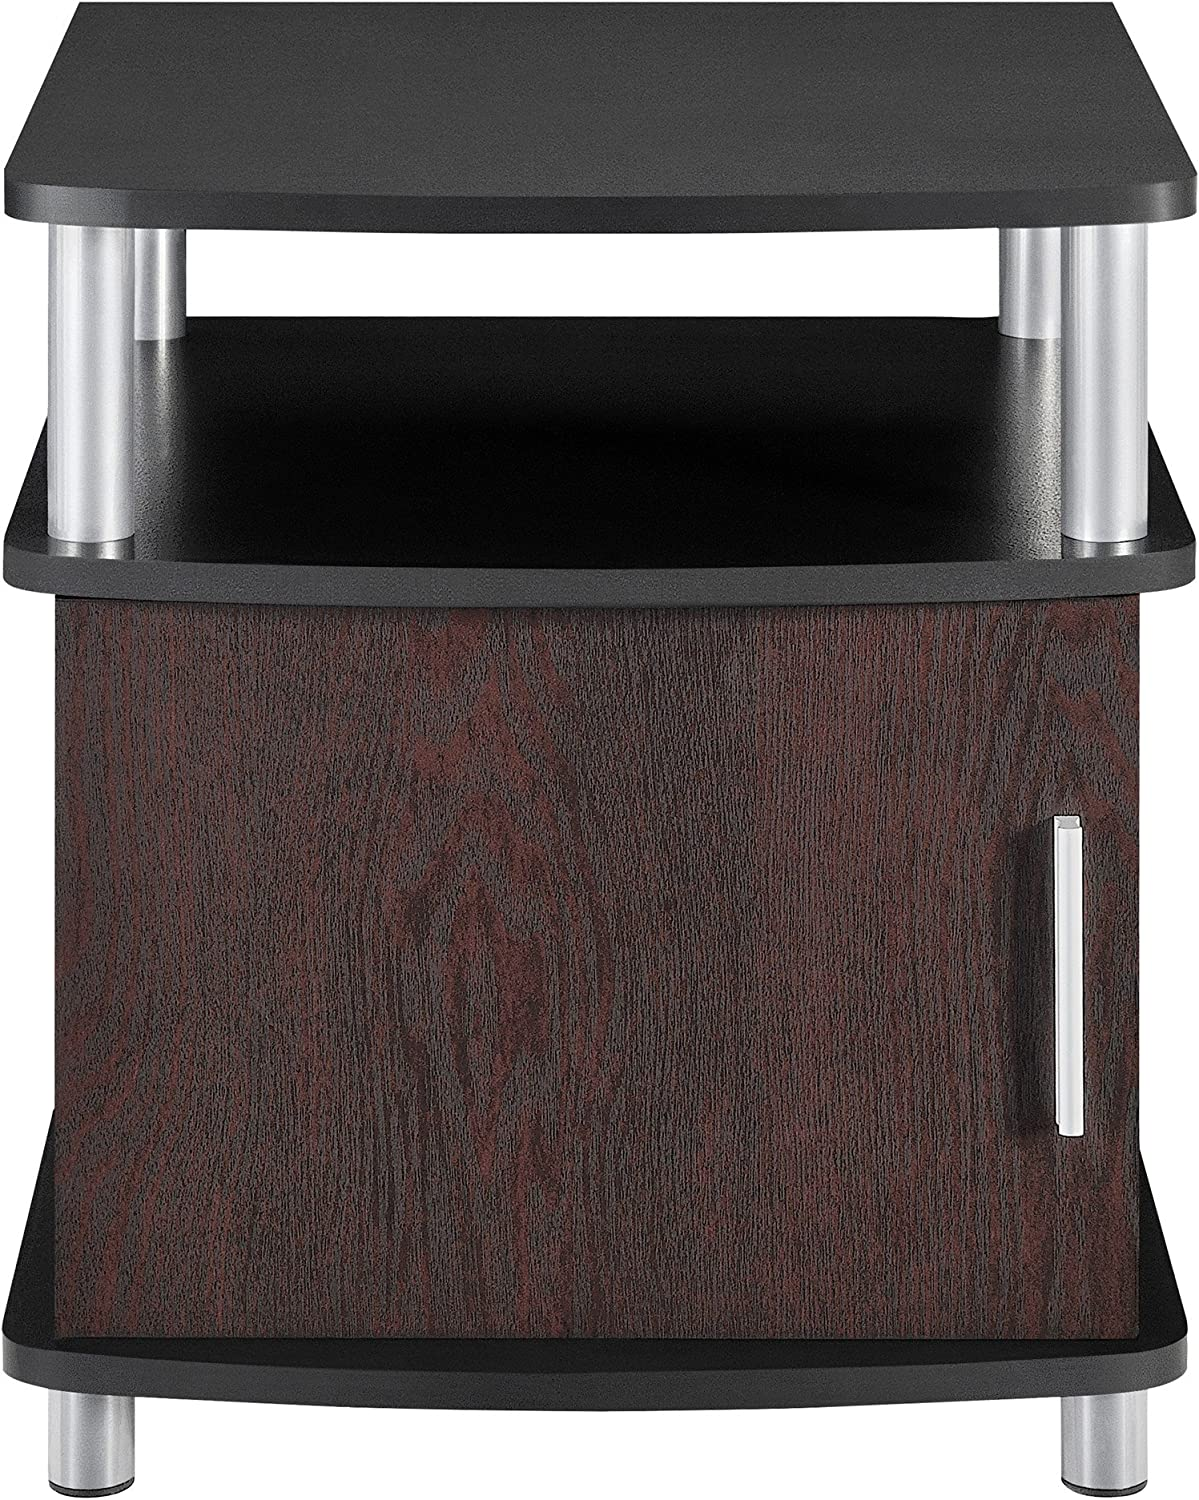 Altra Carson End Table with Storage, Cherry Black